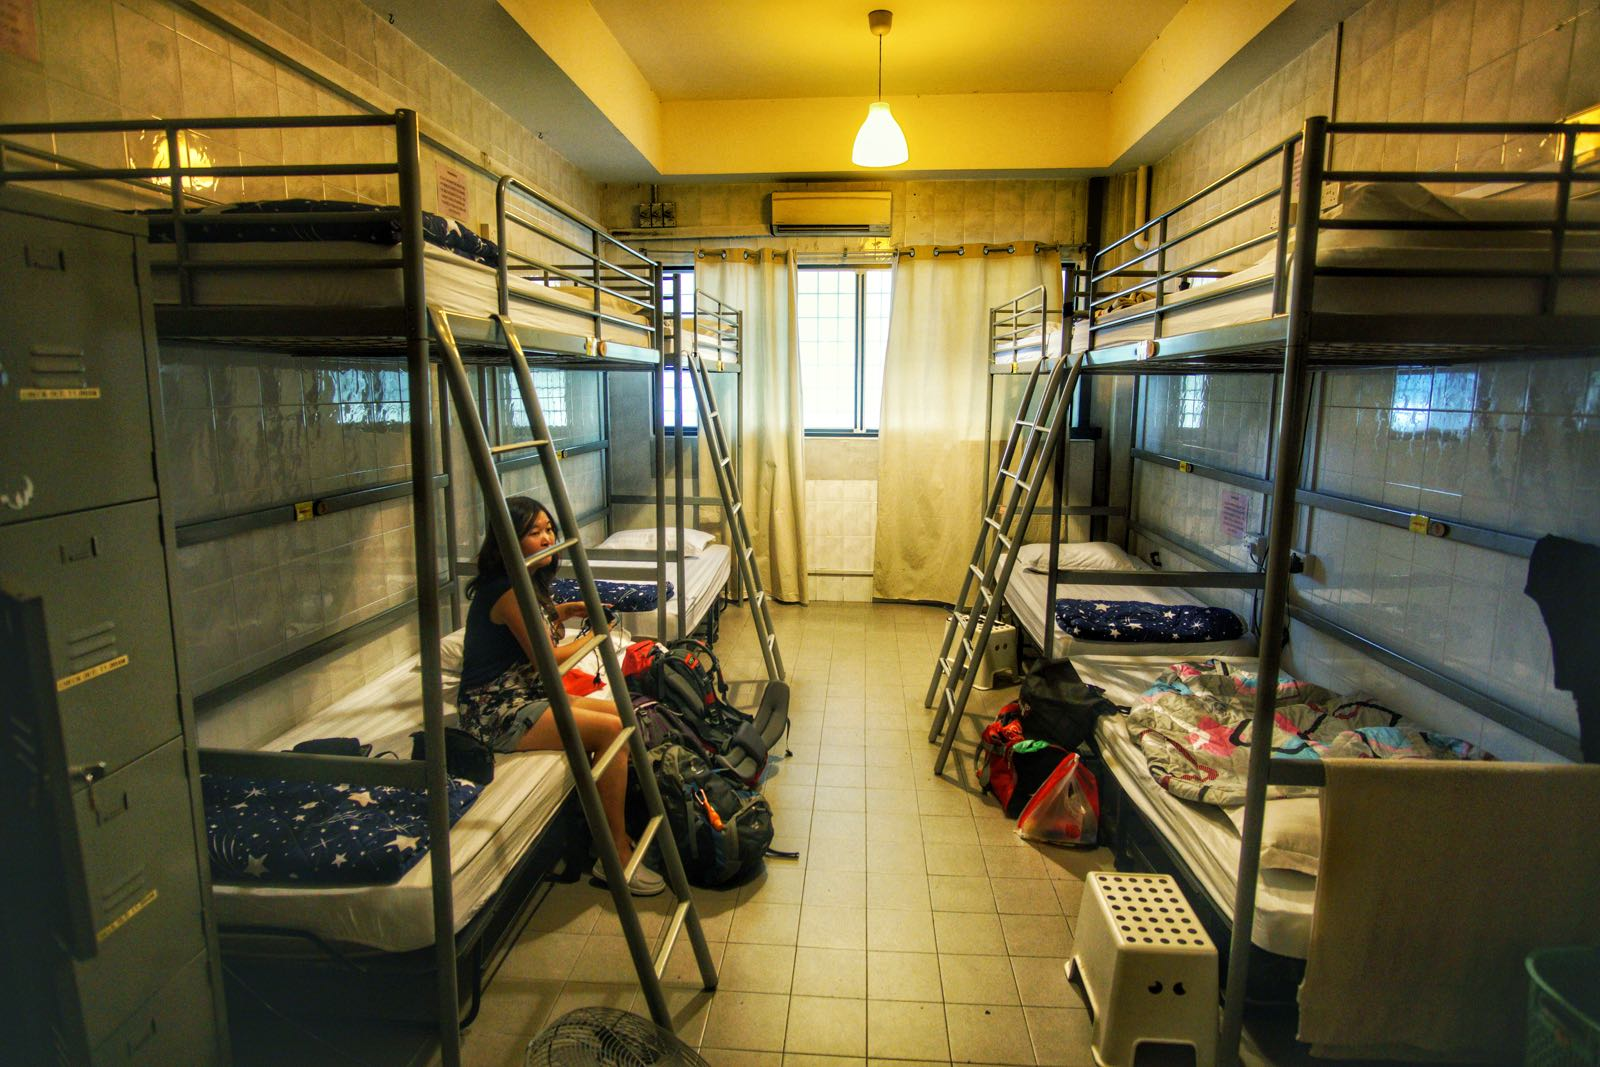 The-Hive-Hostel-Little-India-Singapore-dorm